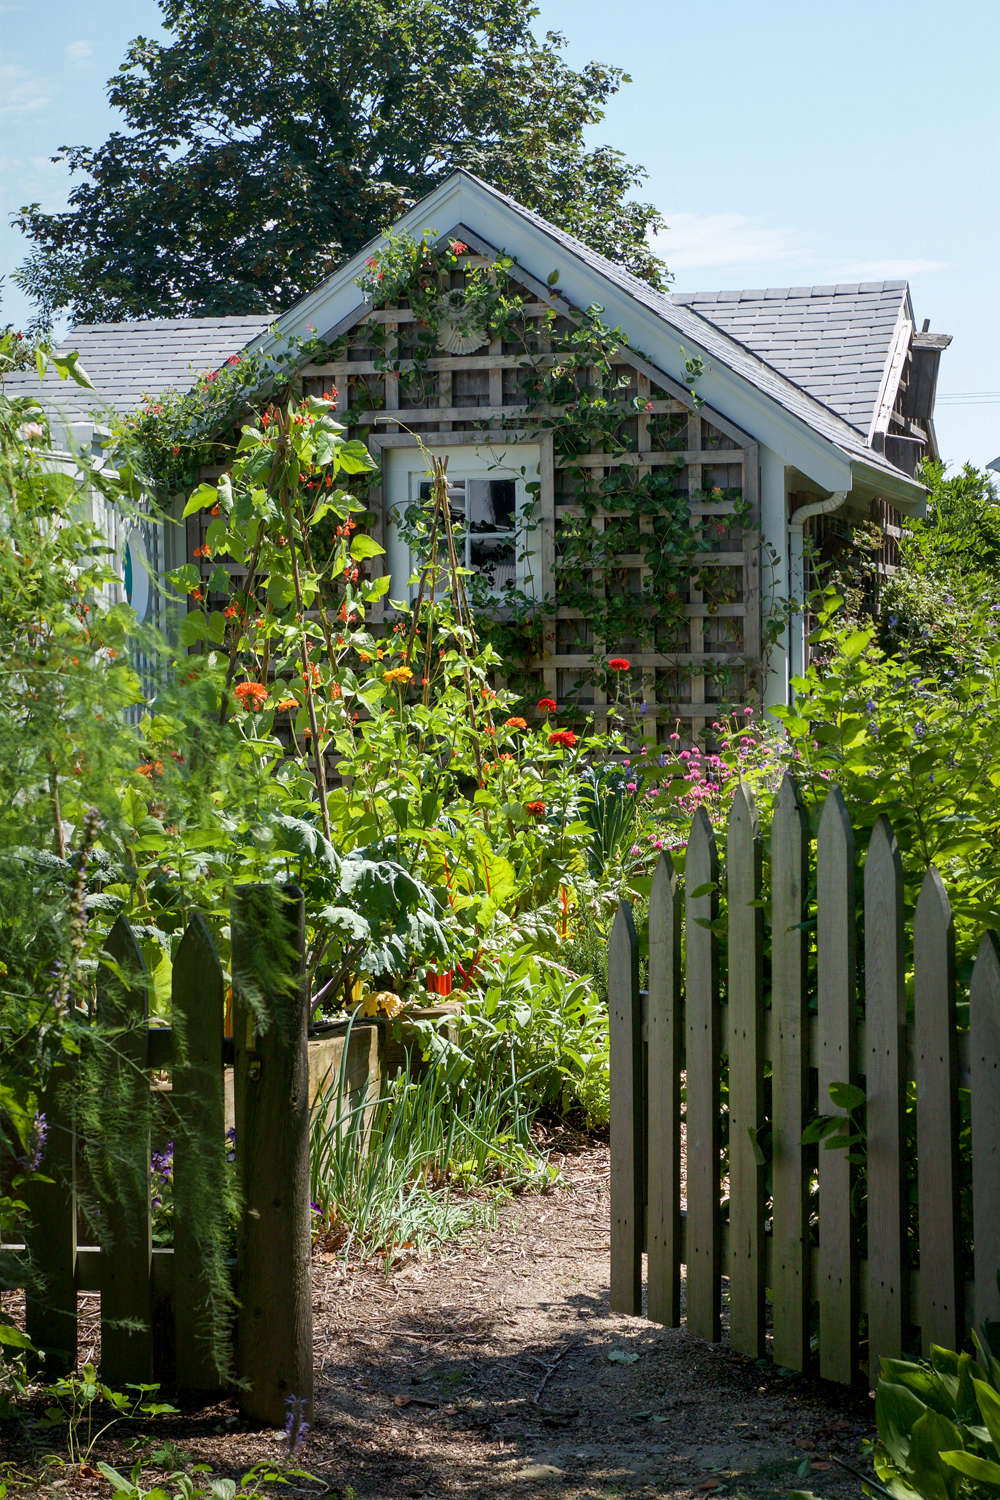 At the home of Marty Davis and Alix Ritchie, an arched gate leads to a vegetable garden patch, its shape an echo of the peaked roof of the cottage beyond.